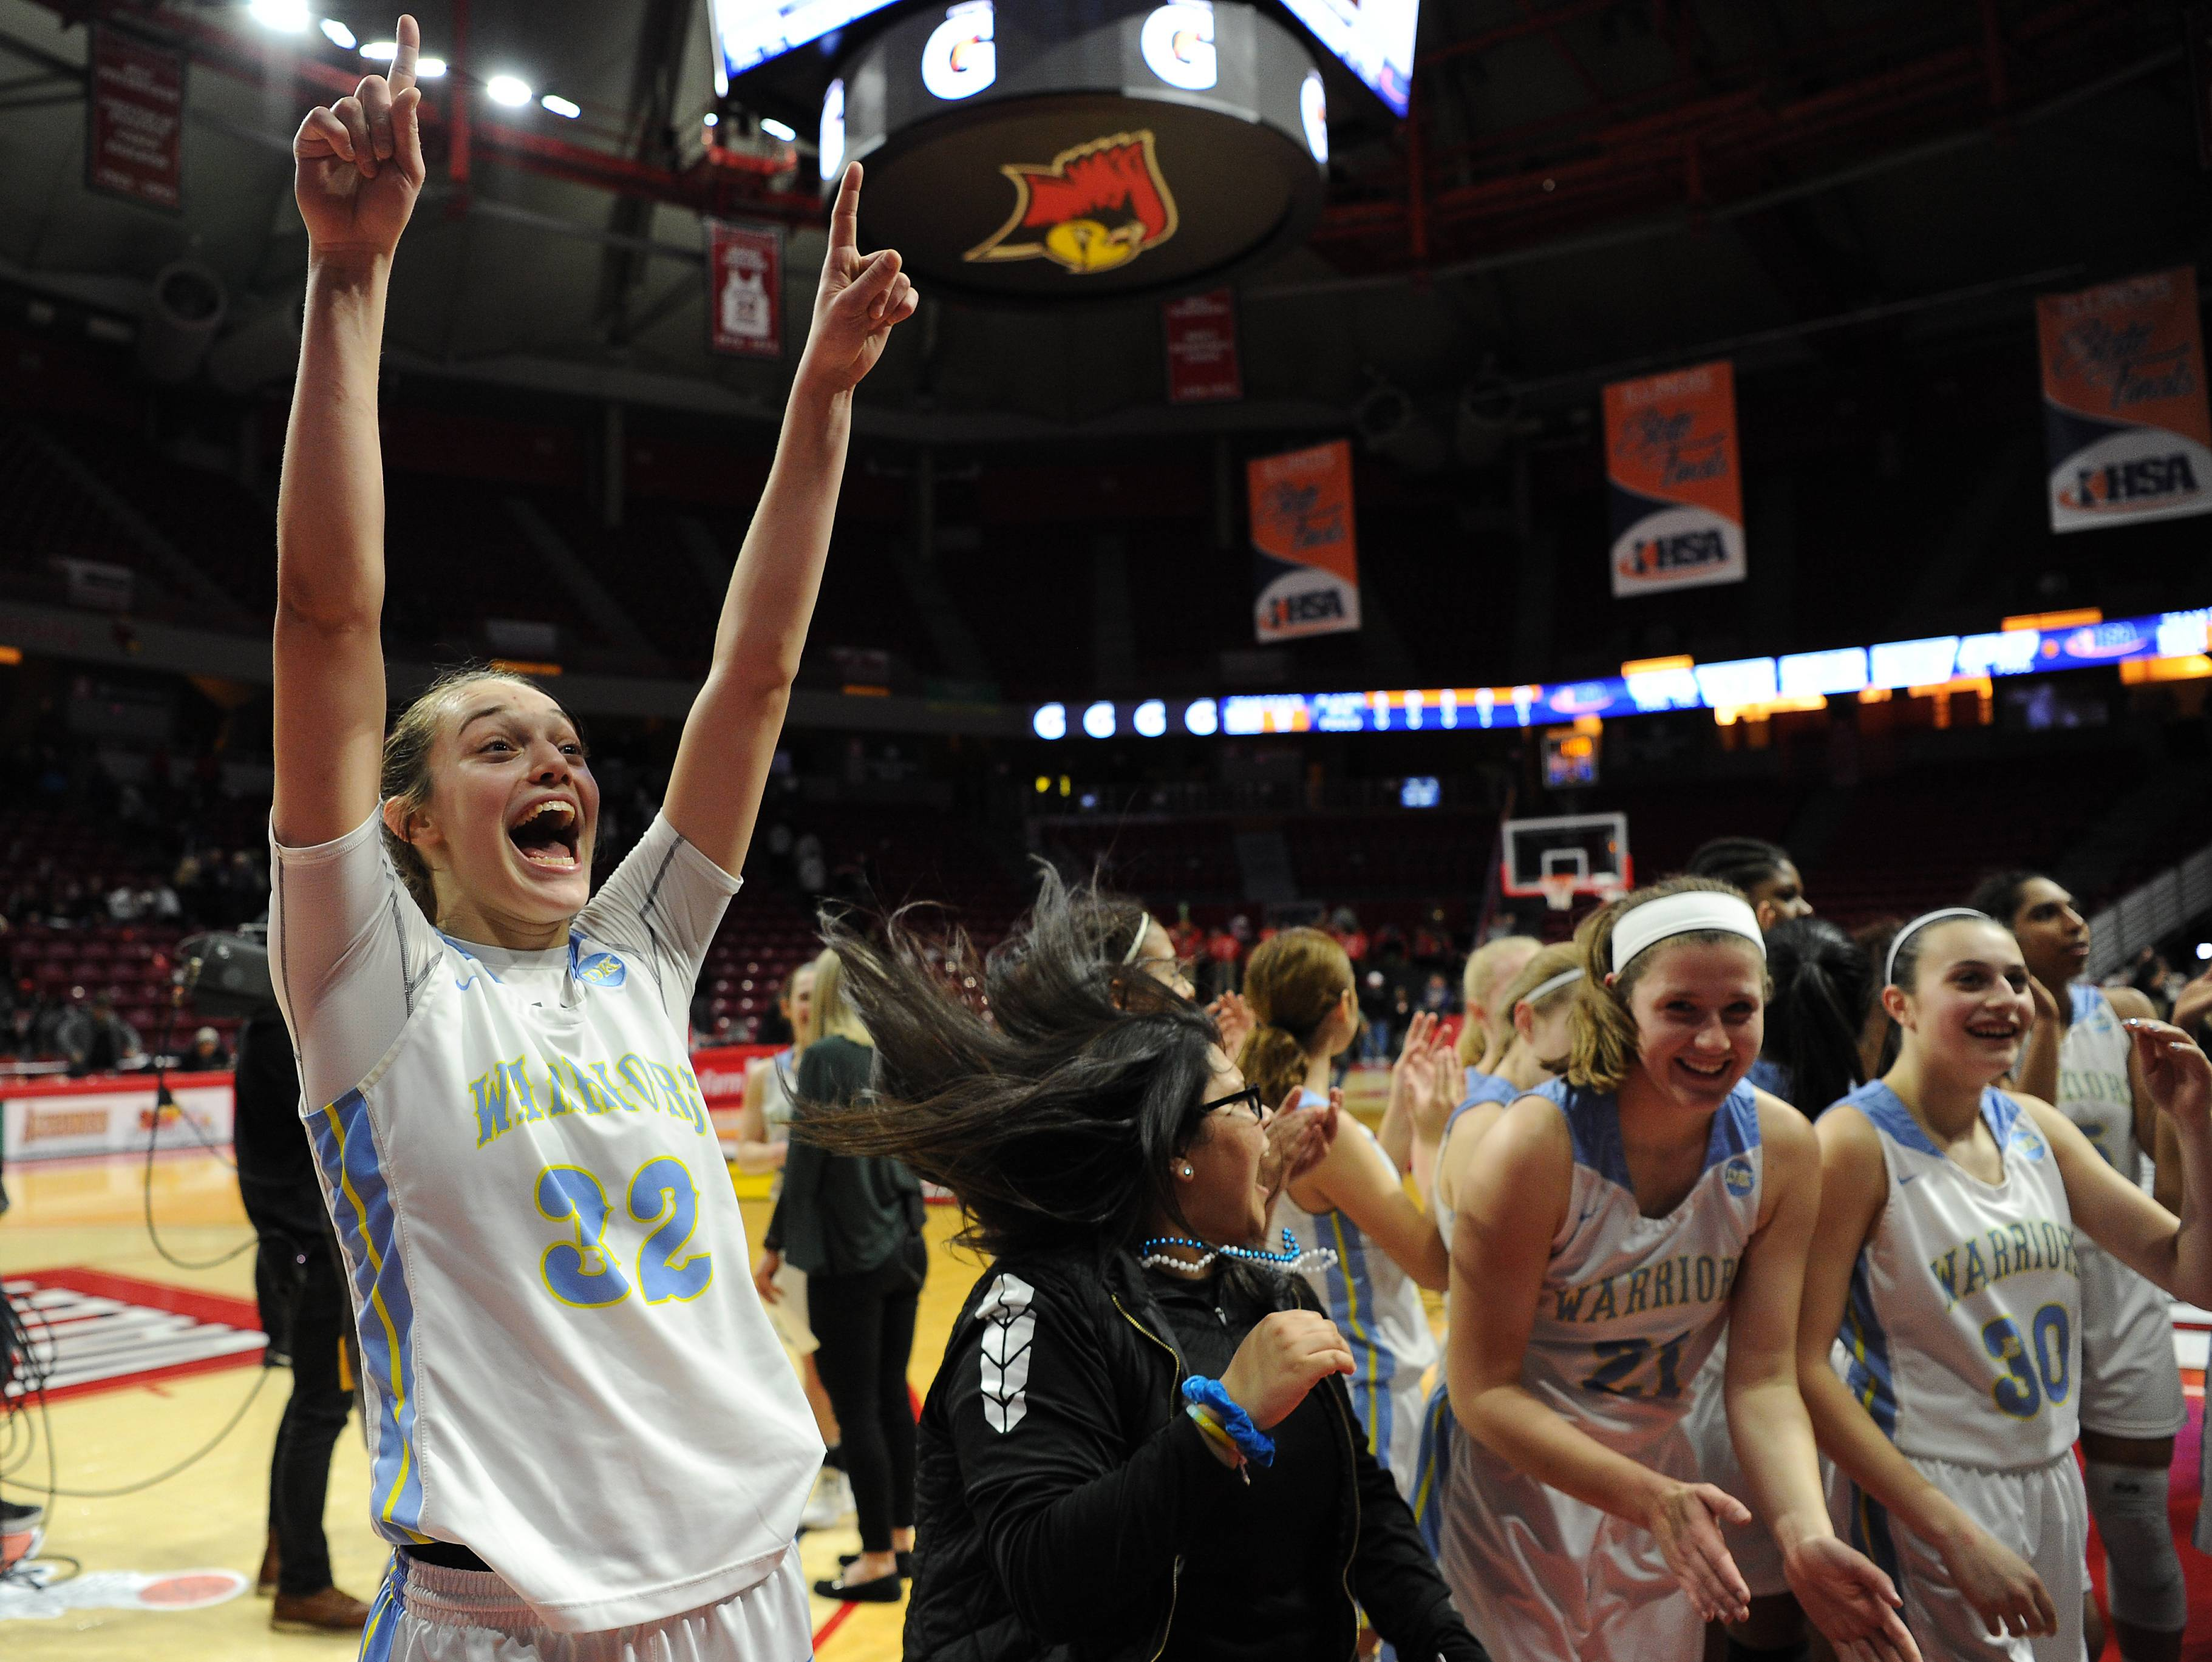 Maine West's Angela Dugalic celebrates with her teammates as she turns toward her fans after they win over Hononegah and head to the finals against Mother McAuley in the IHSA girls state basketball Class 4A semifinals at Normal on Friday.